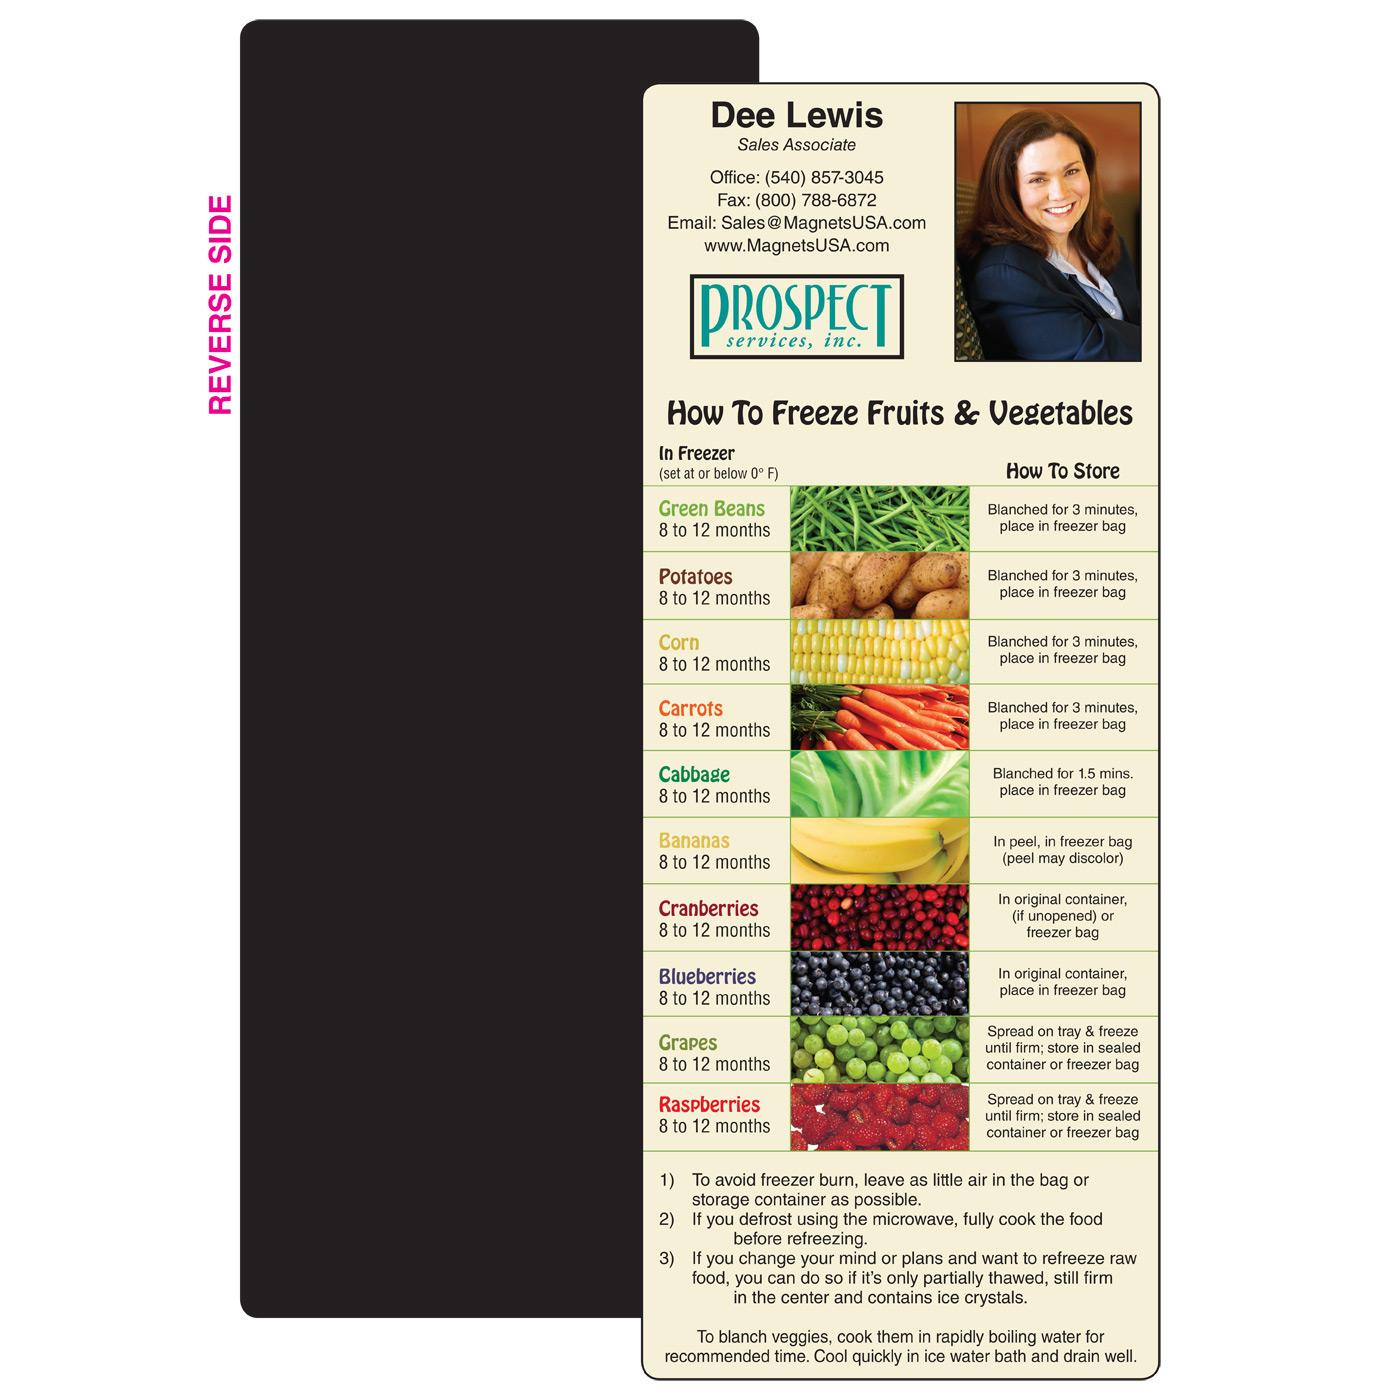 Produce Freezer Guide Full Magnet